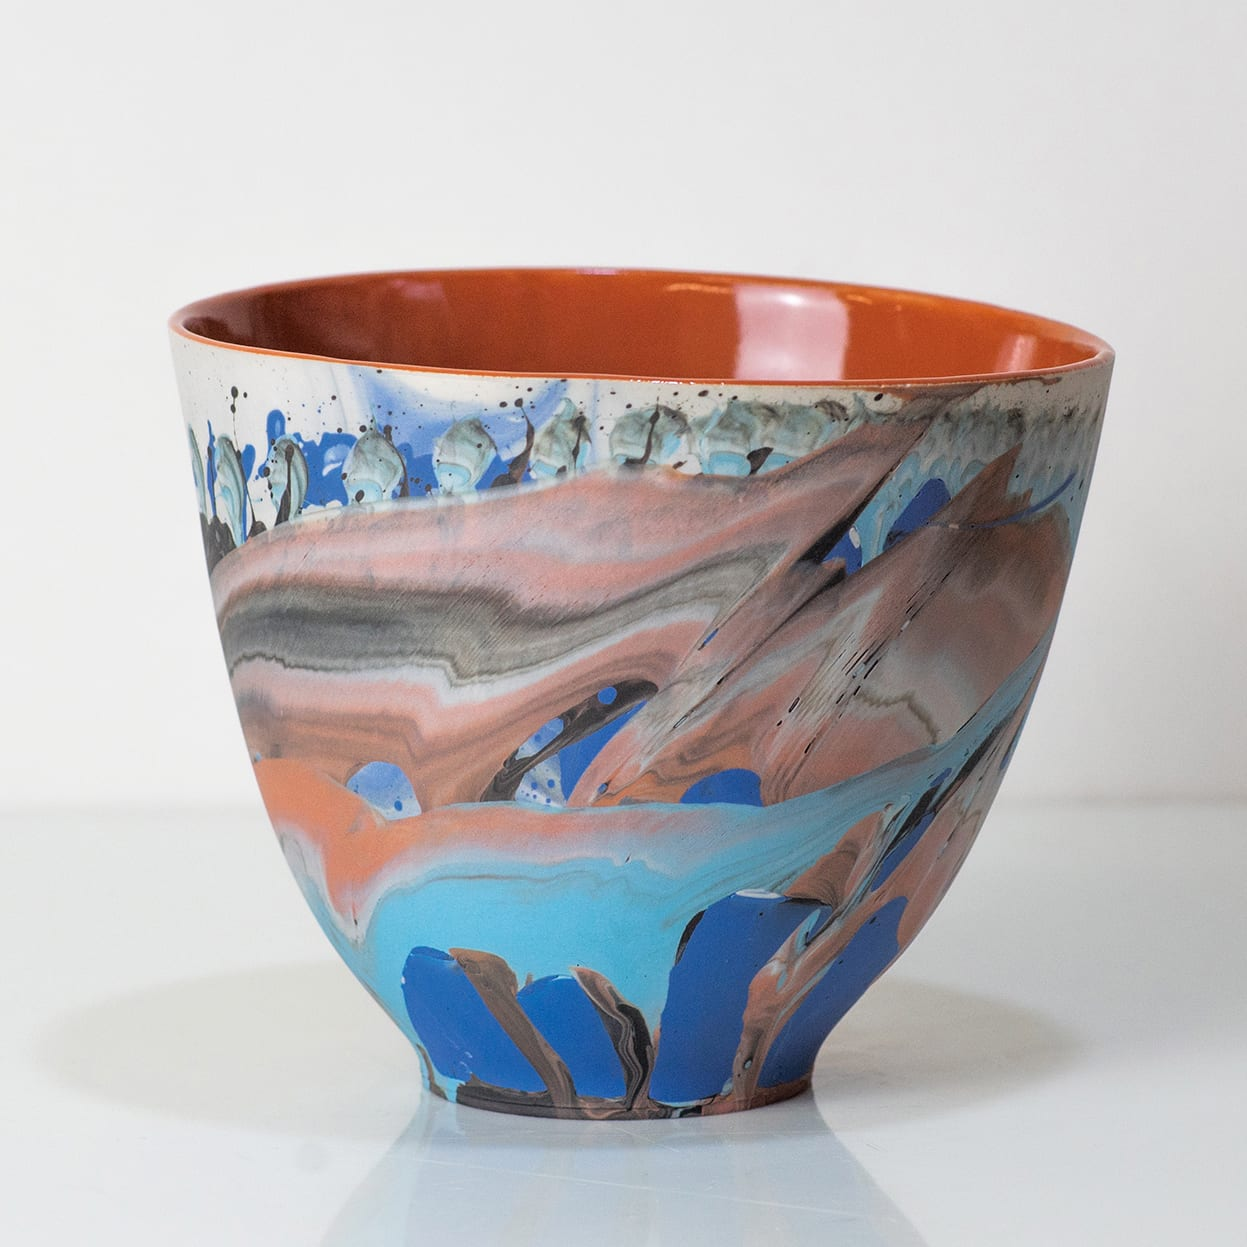 """<span class=""""link fancybox-details-link""""><a href=""""/artists/219-james-pegg/works/6074-james-pegg-bowl-2019/"""">View Detail Page</a></span><div class=""""artist""""><strong>James Pegg</strong></div> <div class=""""title""""><em>Bowl</em>, 2019</div> <div class=""""medium"""">action-cast stained porcelain with glazed interior</div> <div class=""""dimensions"""">h 13 cm<br /> 5 1/4 in</div><div class=""""price"""">£145.00</div><div class=""""copyright_line"""">OwnArt: £ 14.50 x 10 Months, 0% APR </div>"""